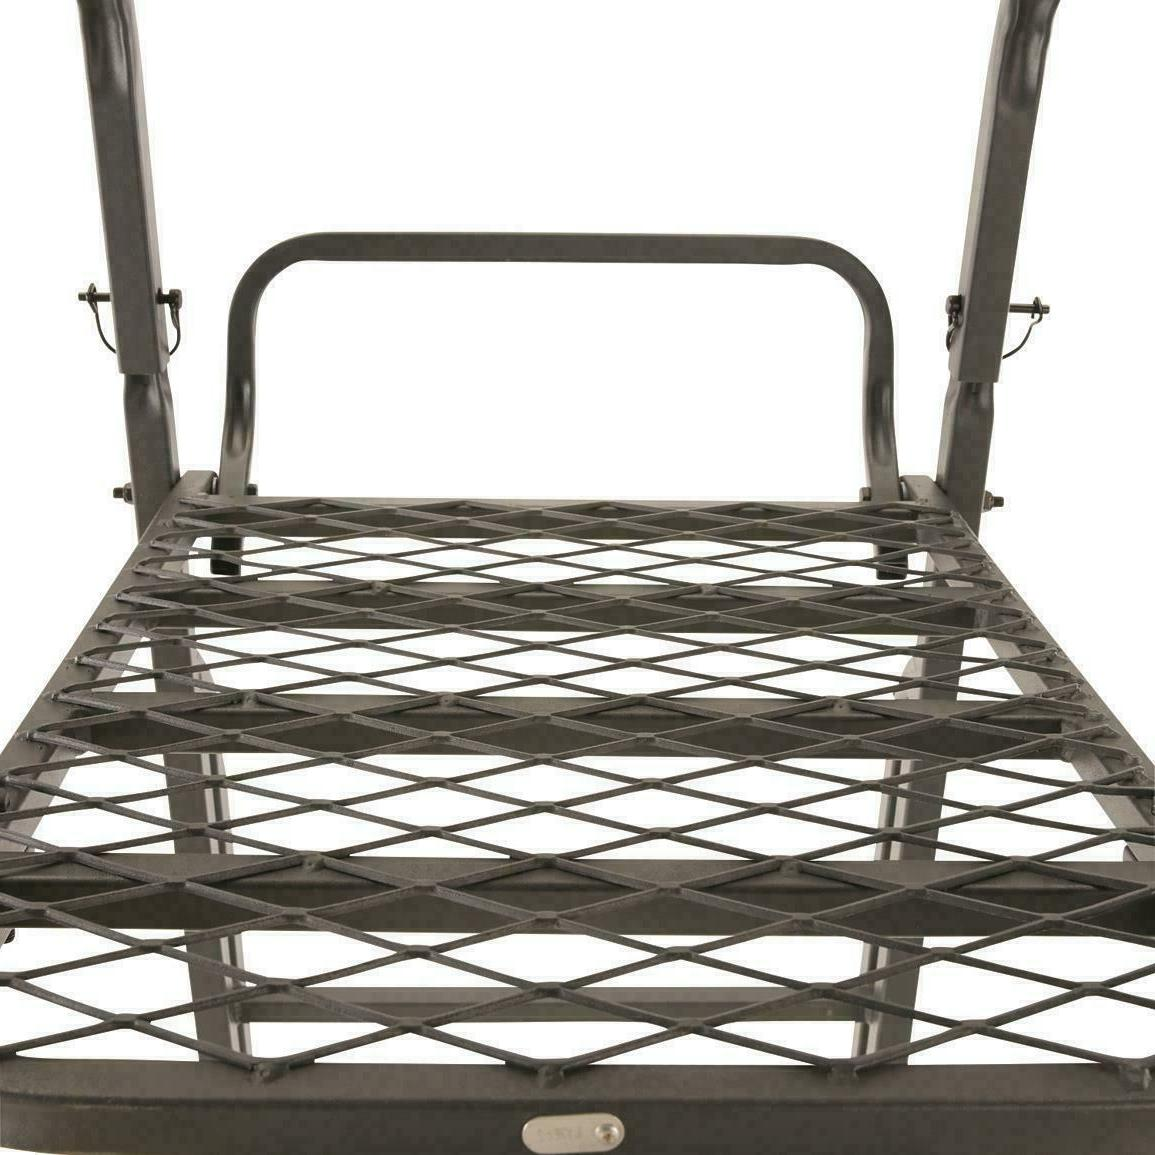 Guide 21 Double Rail Ladder Stand Armrest Deer Solid